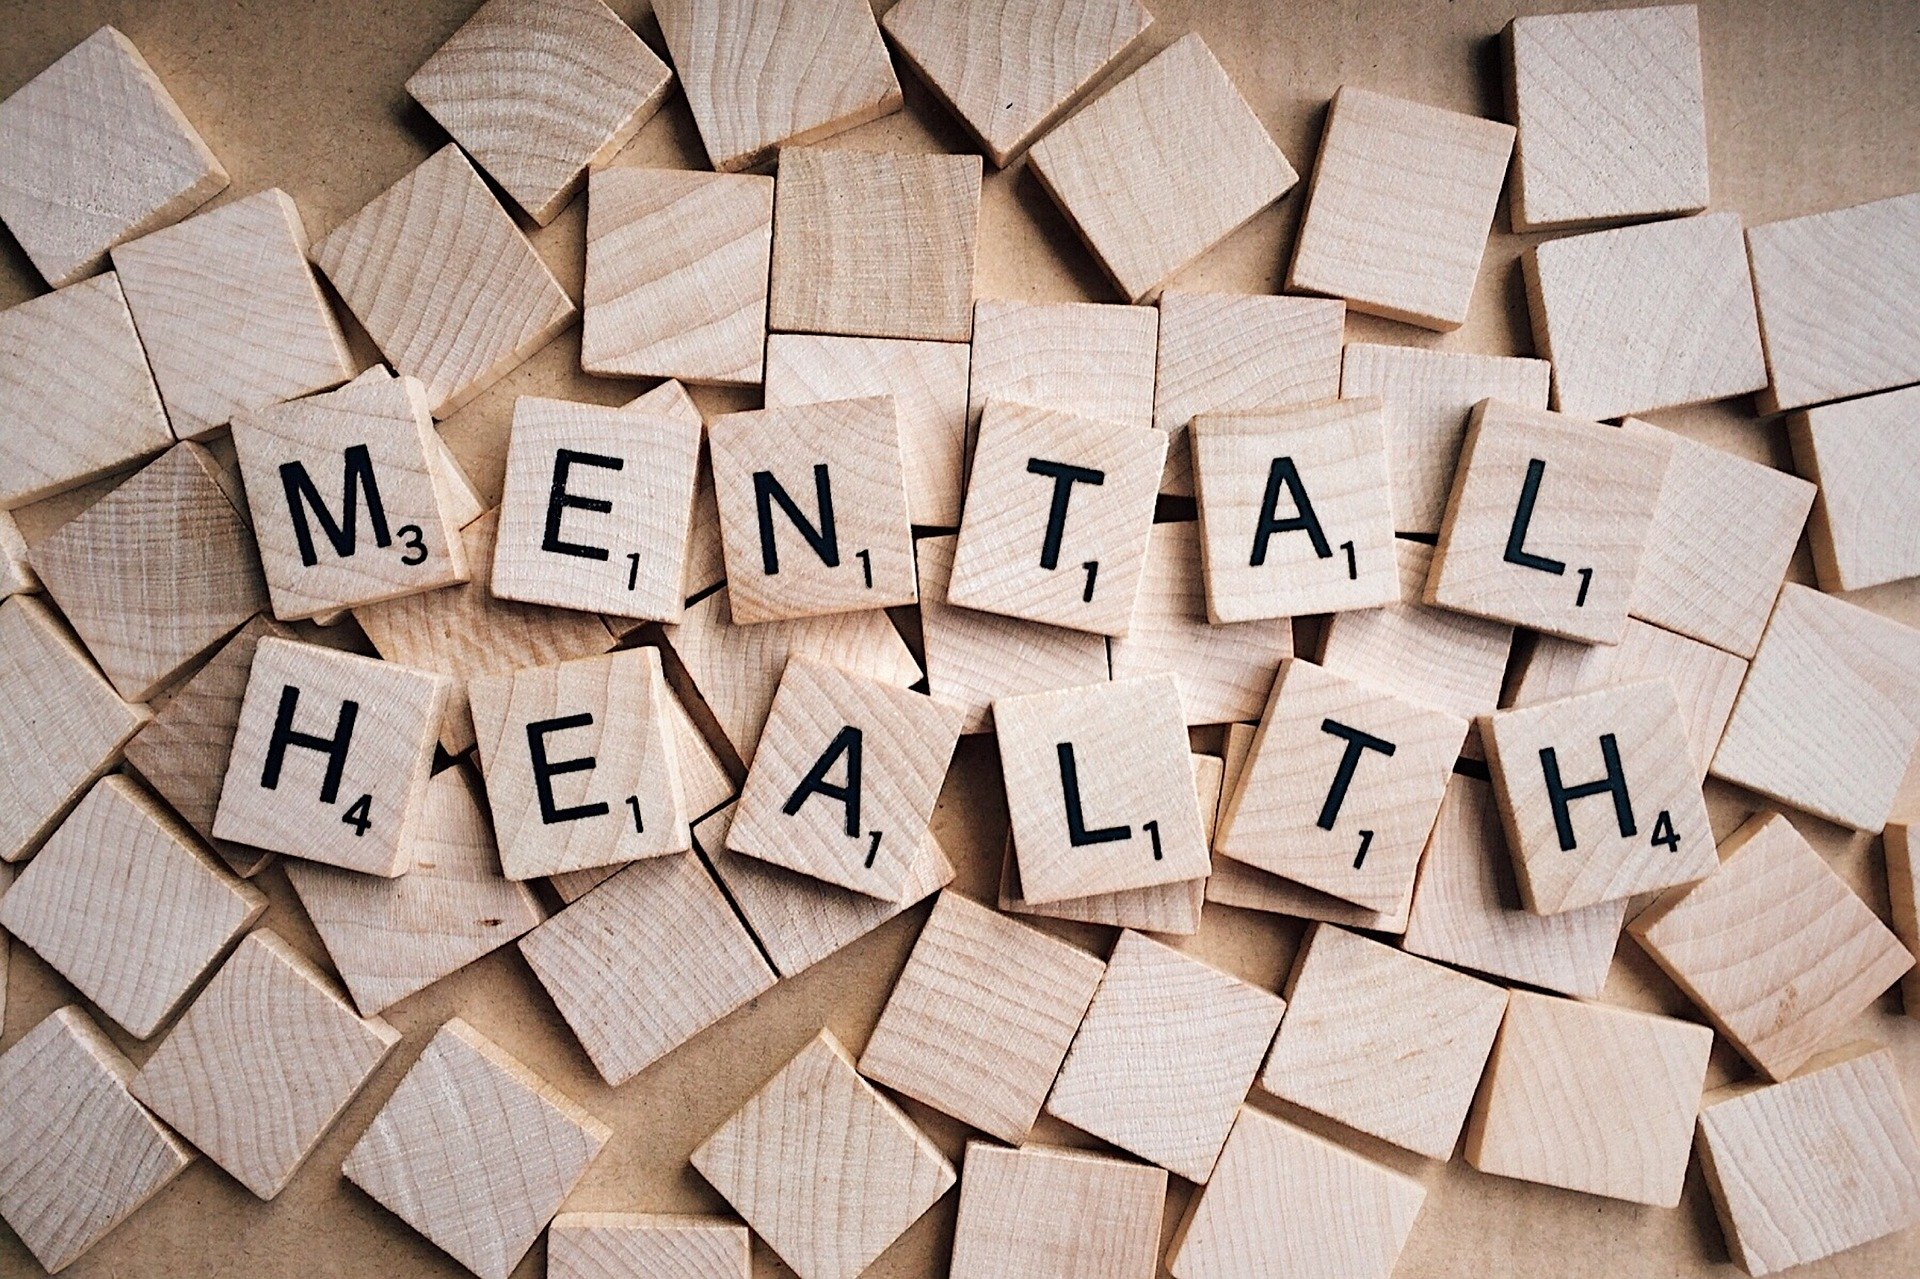 image of mental health puzzle